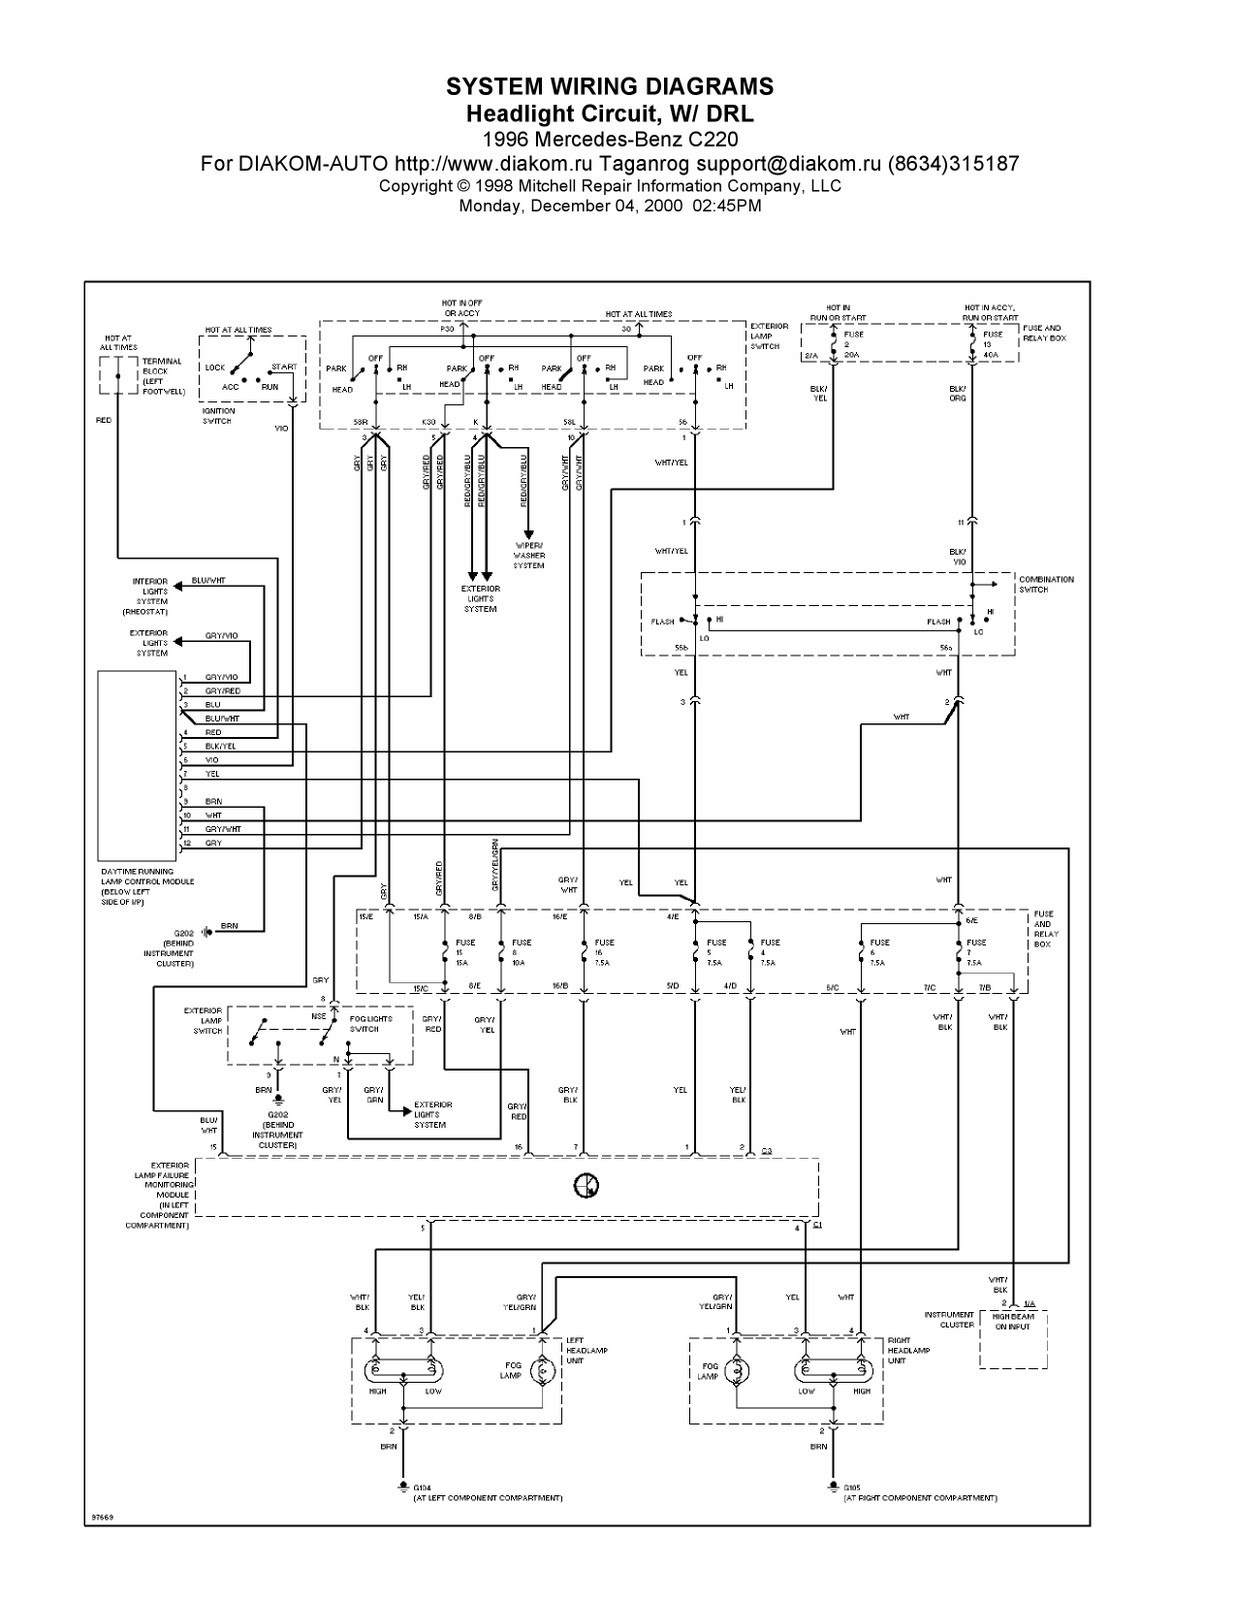 Mercedes Pagoda Wiring Diagram : Mercedes c wiring diagram diagrams repair